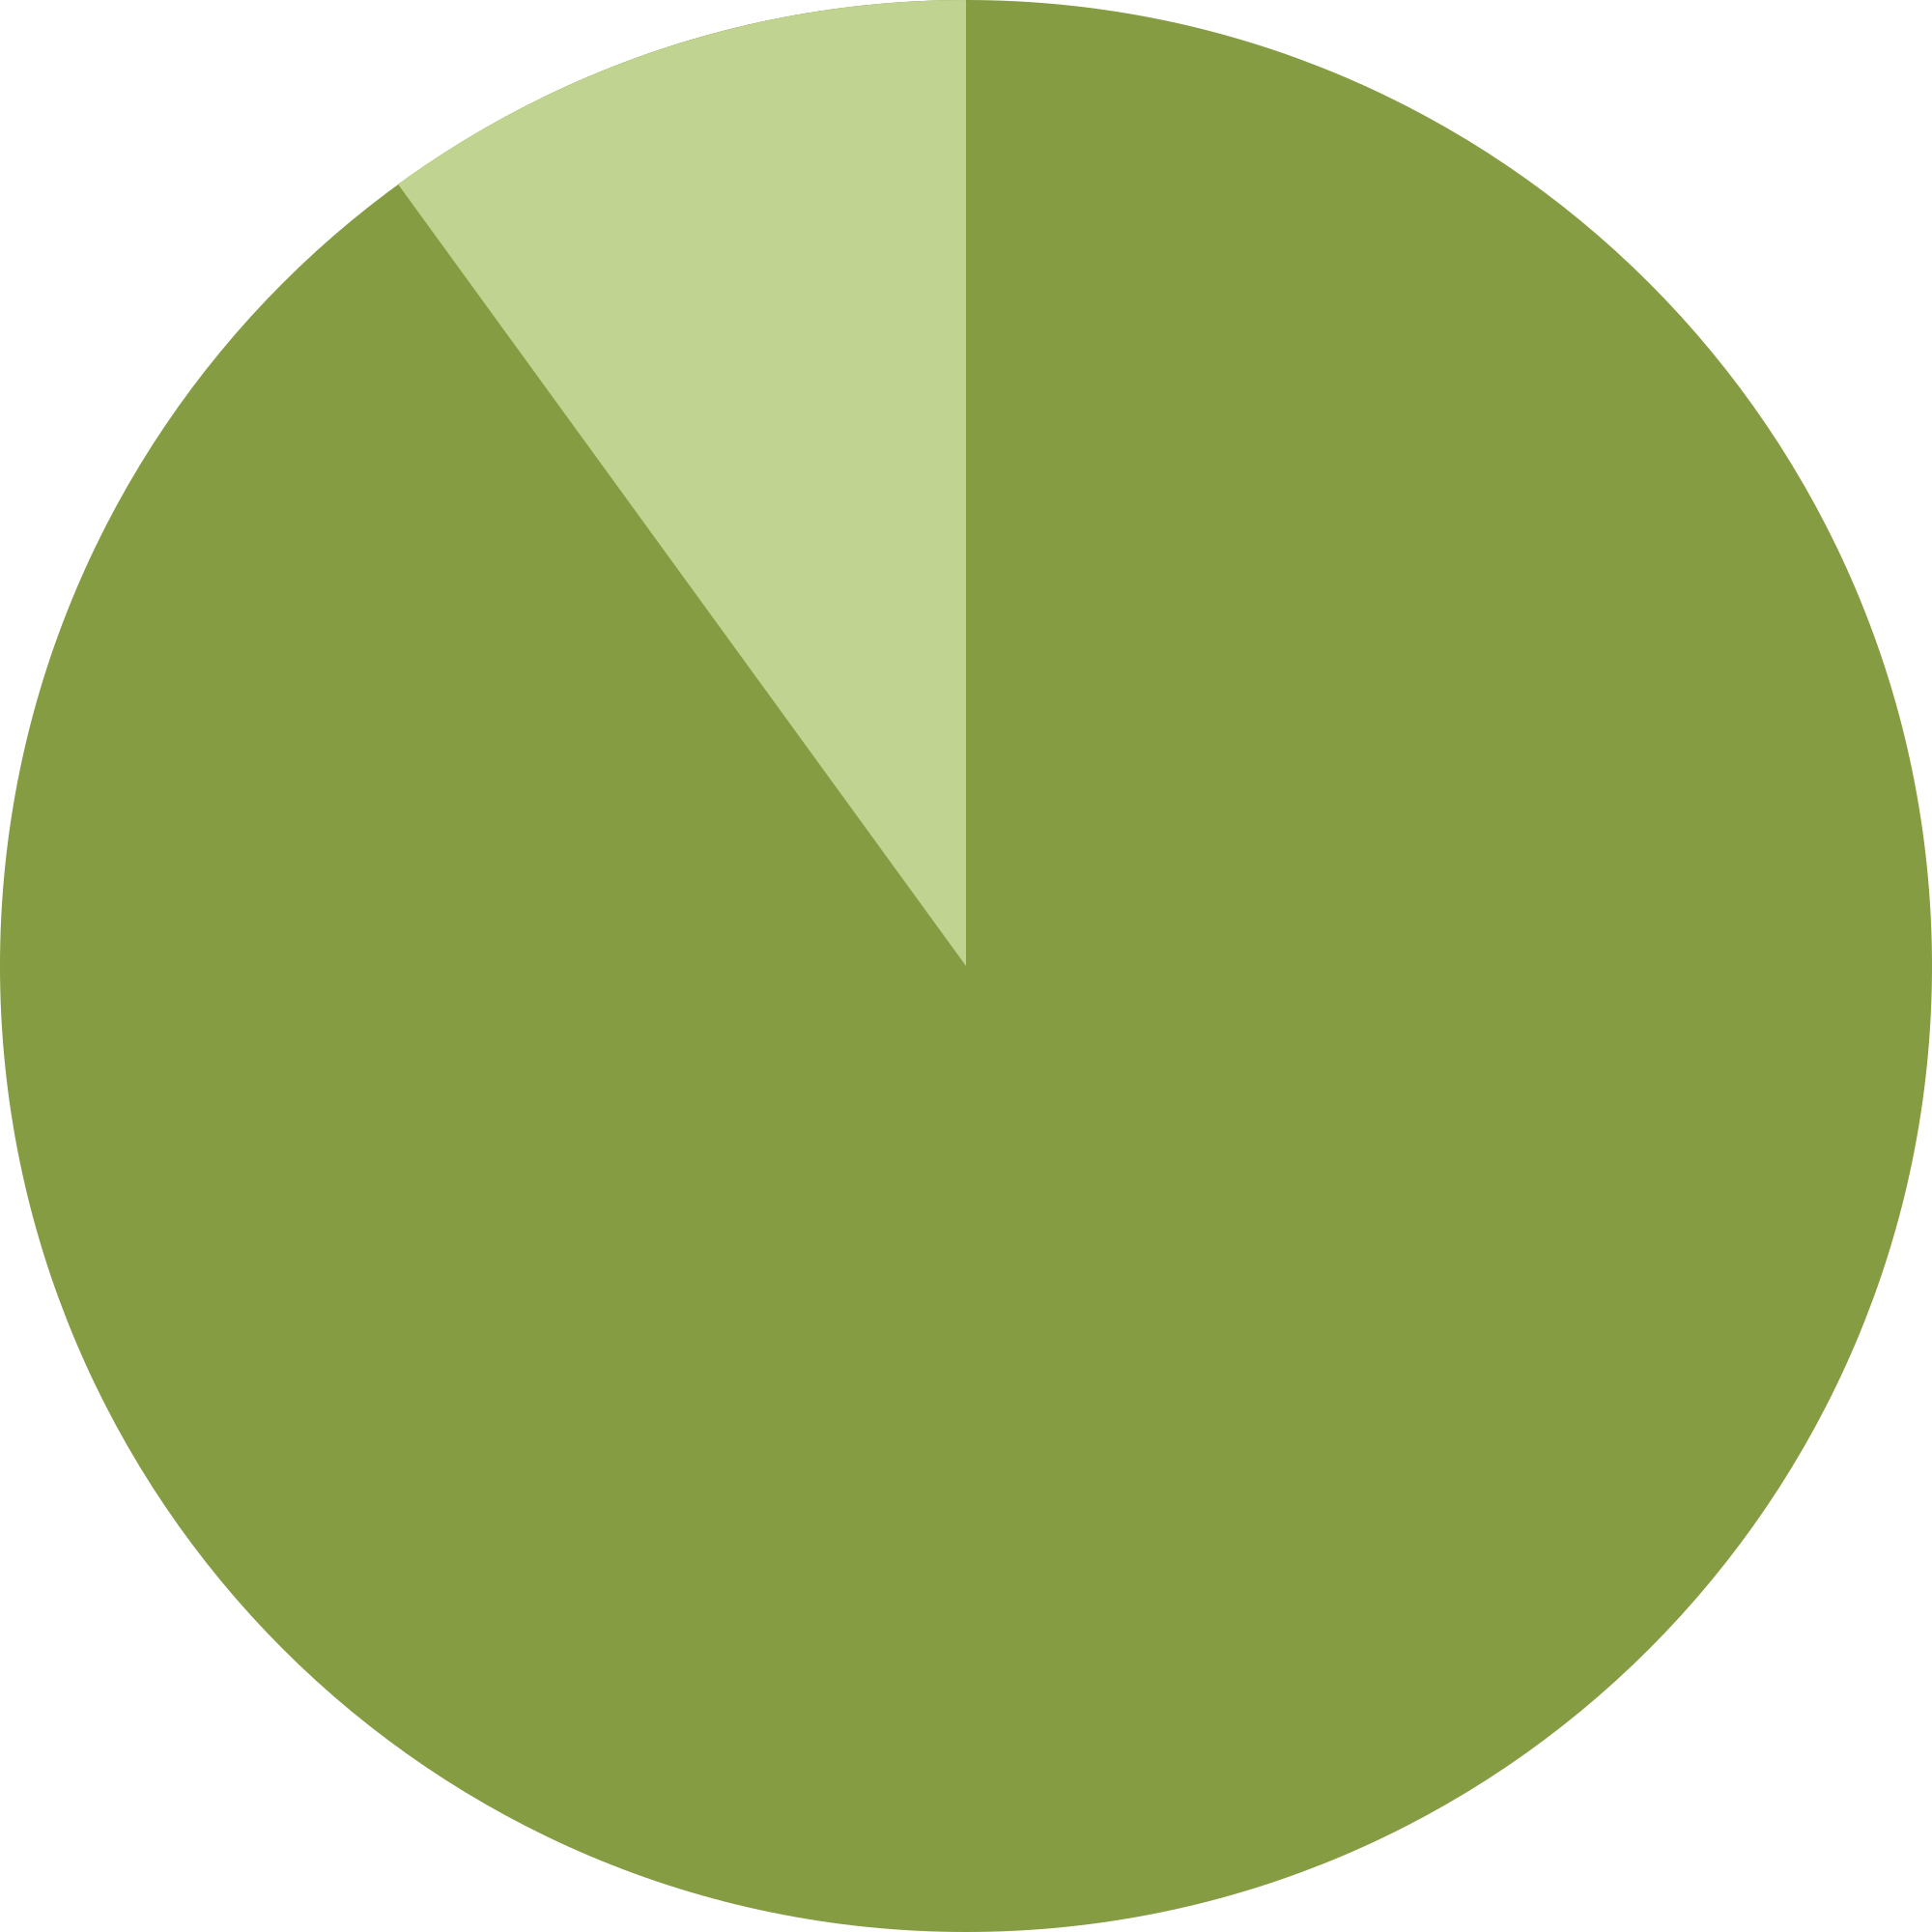 Png pie chart. File svg wikimedia commons